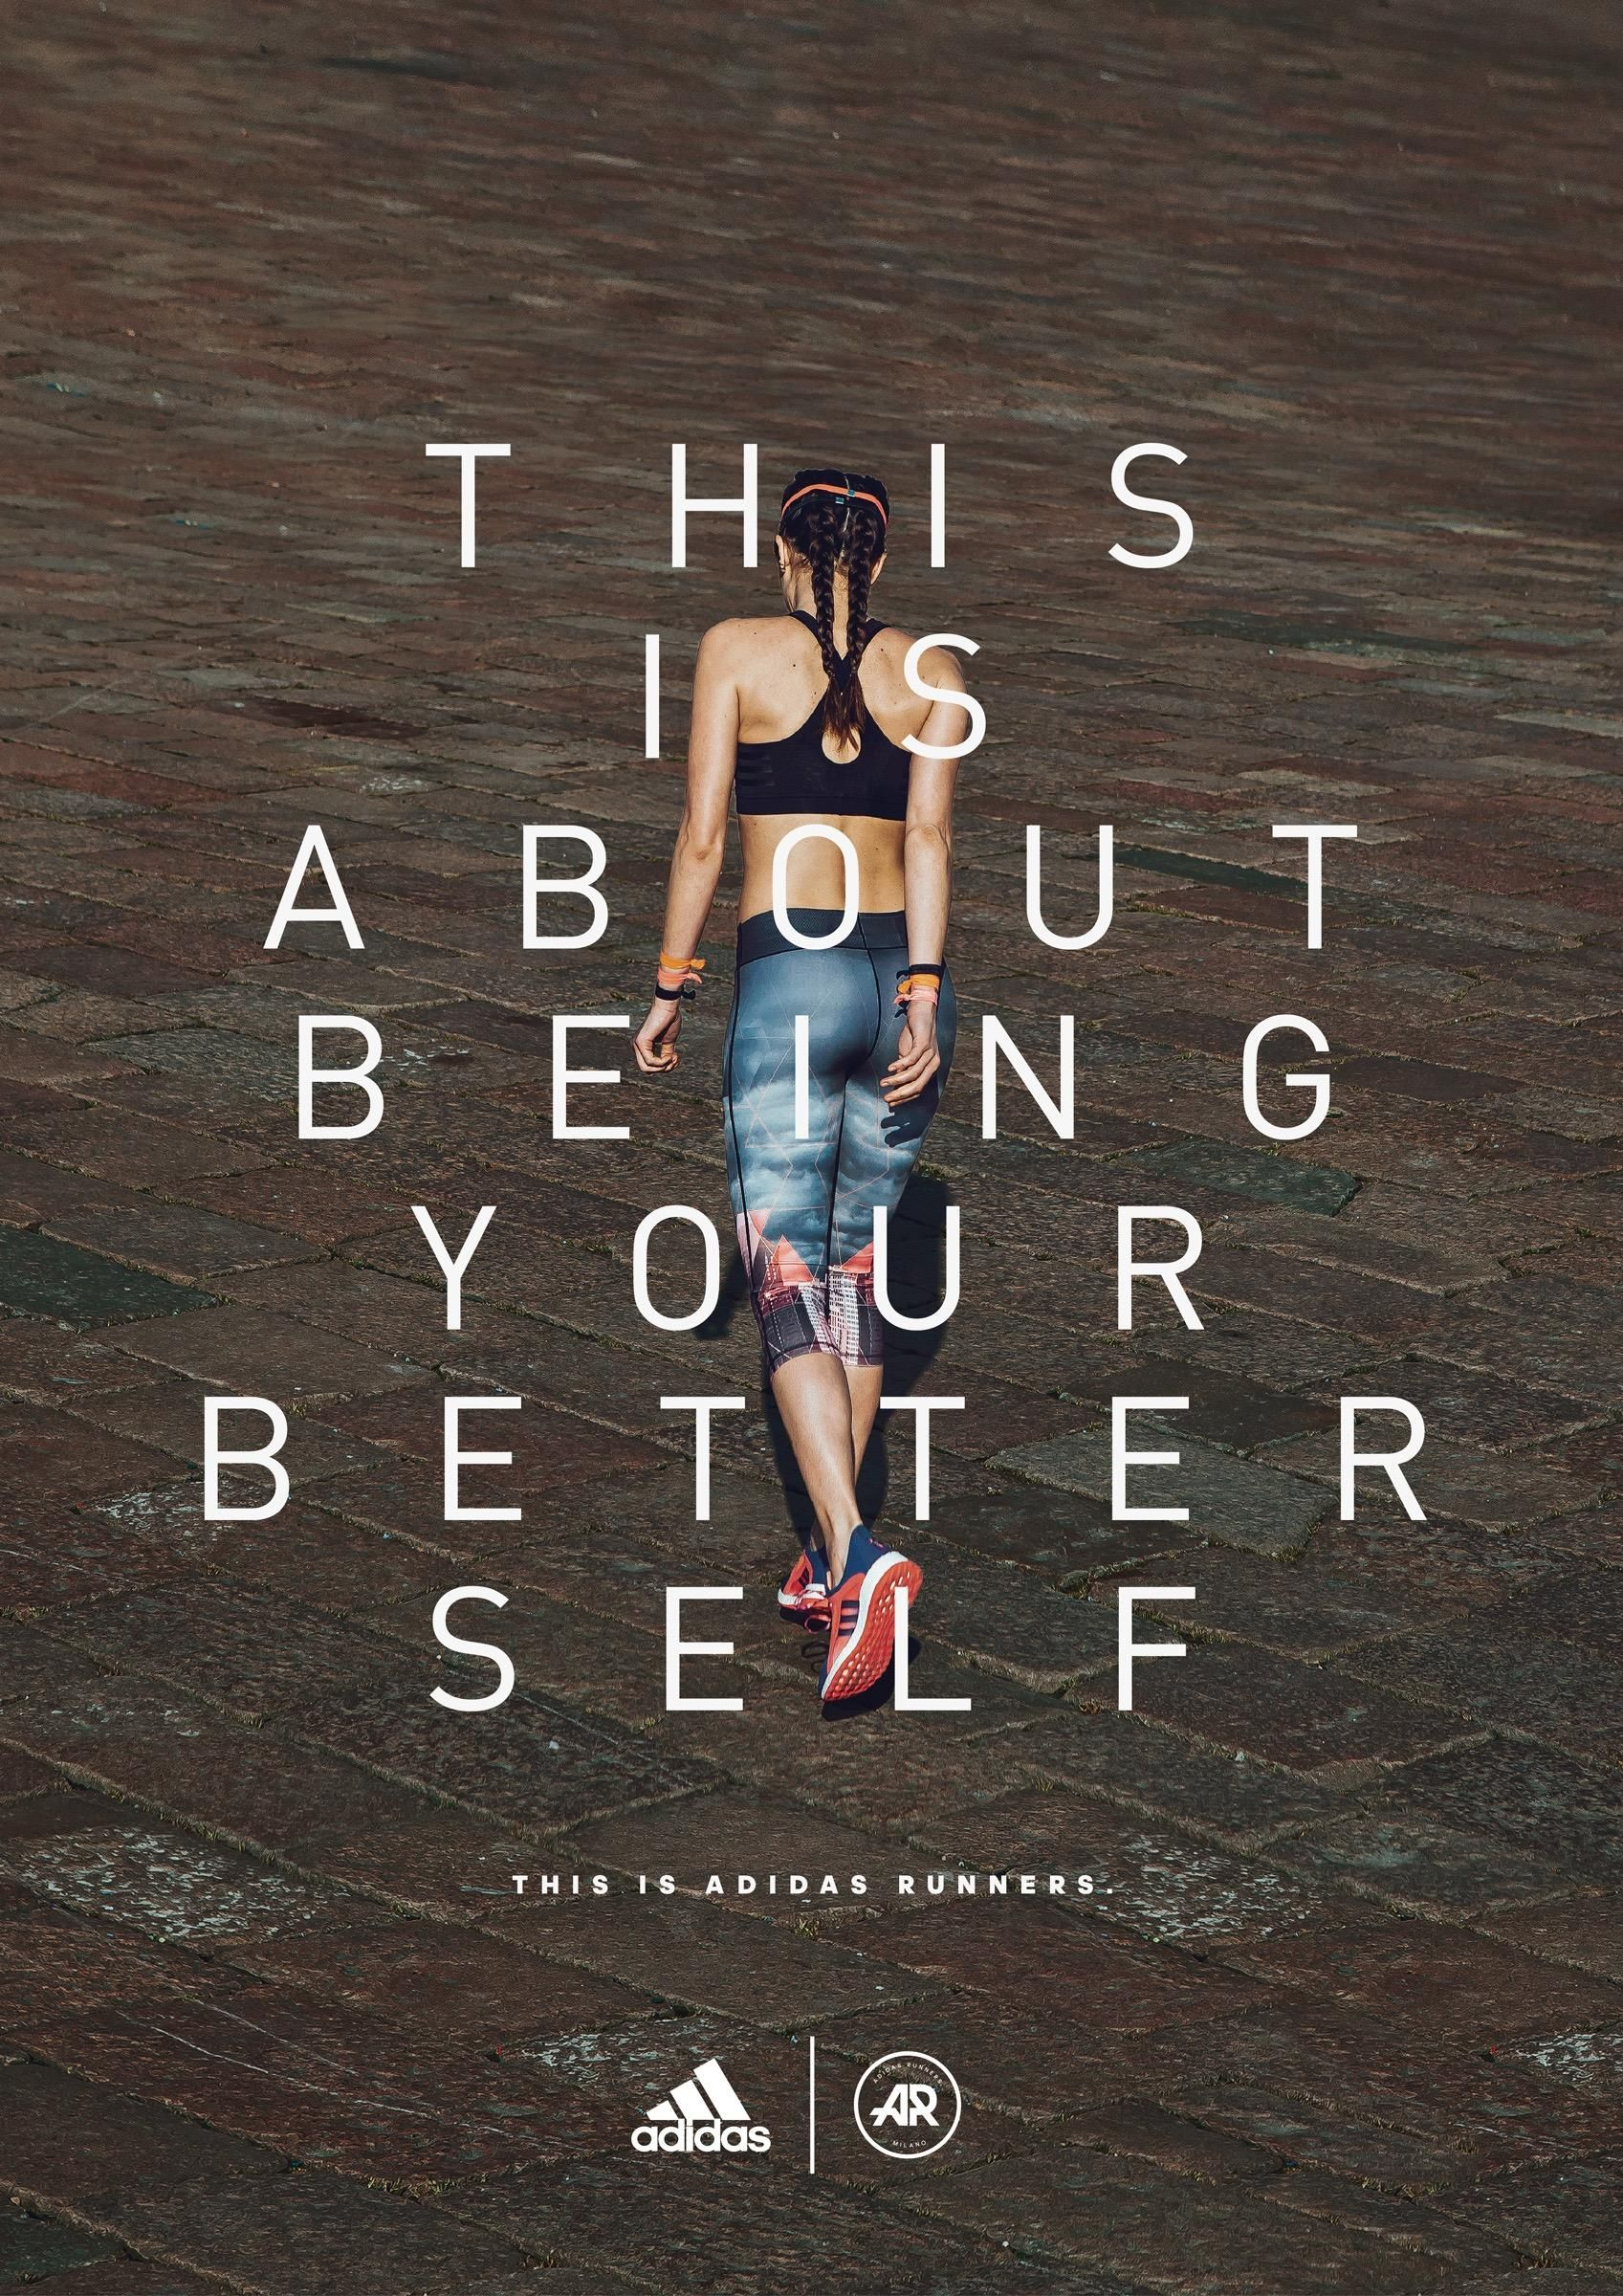 Better Self Ads Of The World Adidas Runners Sports Advertising Best Self